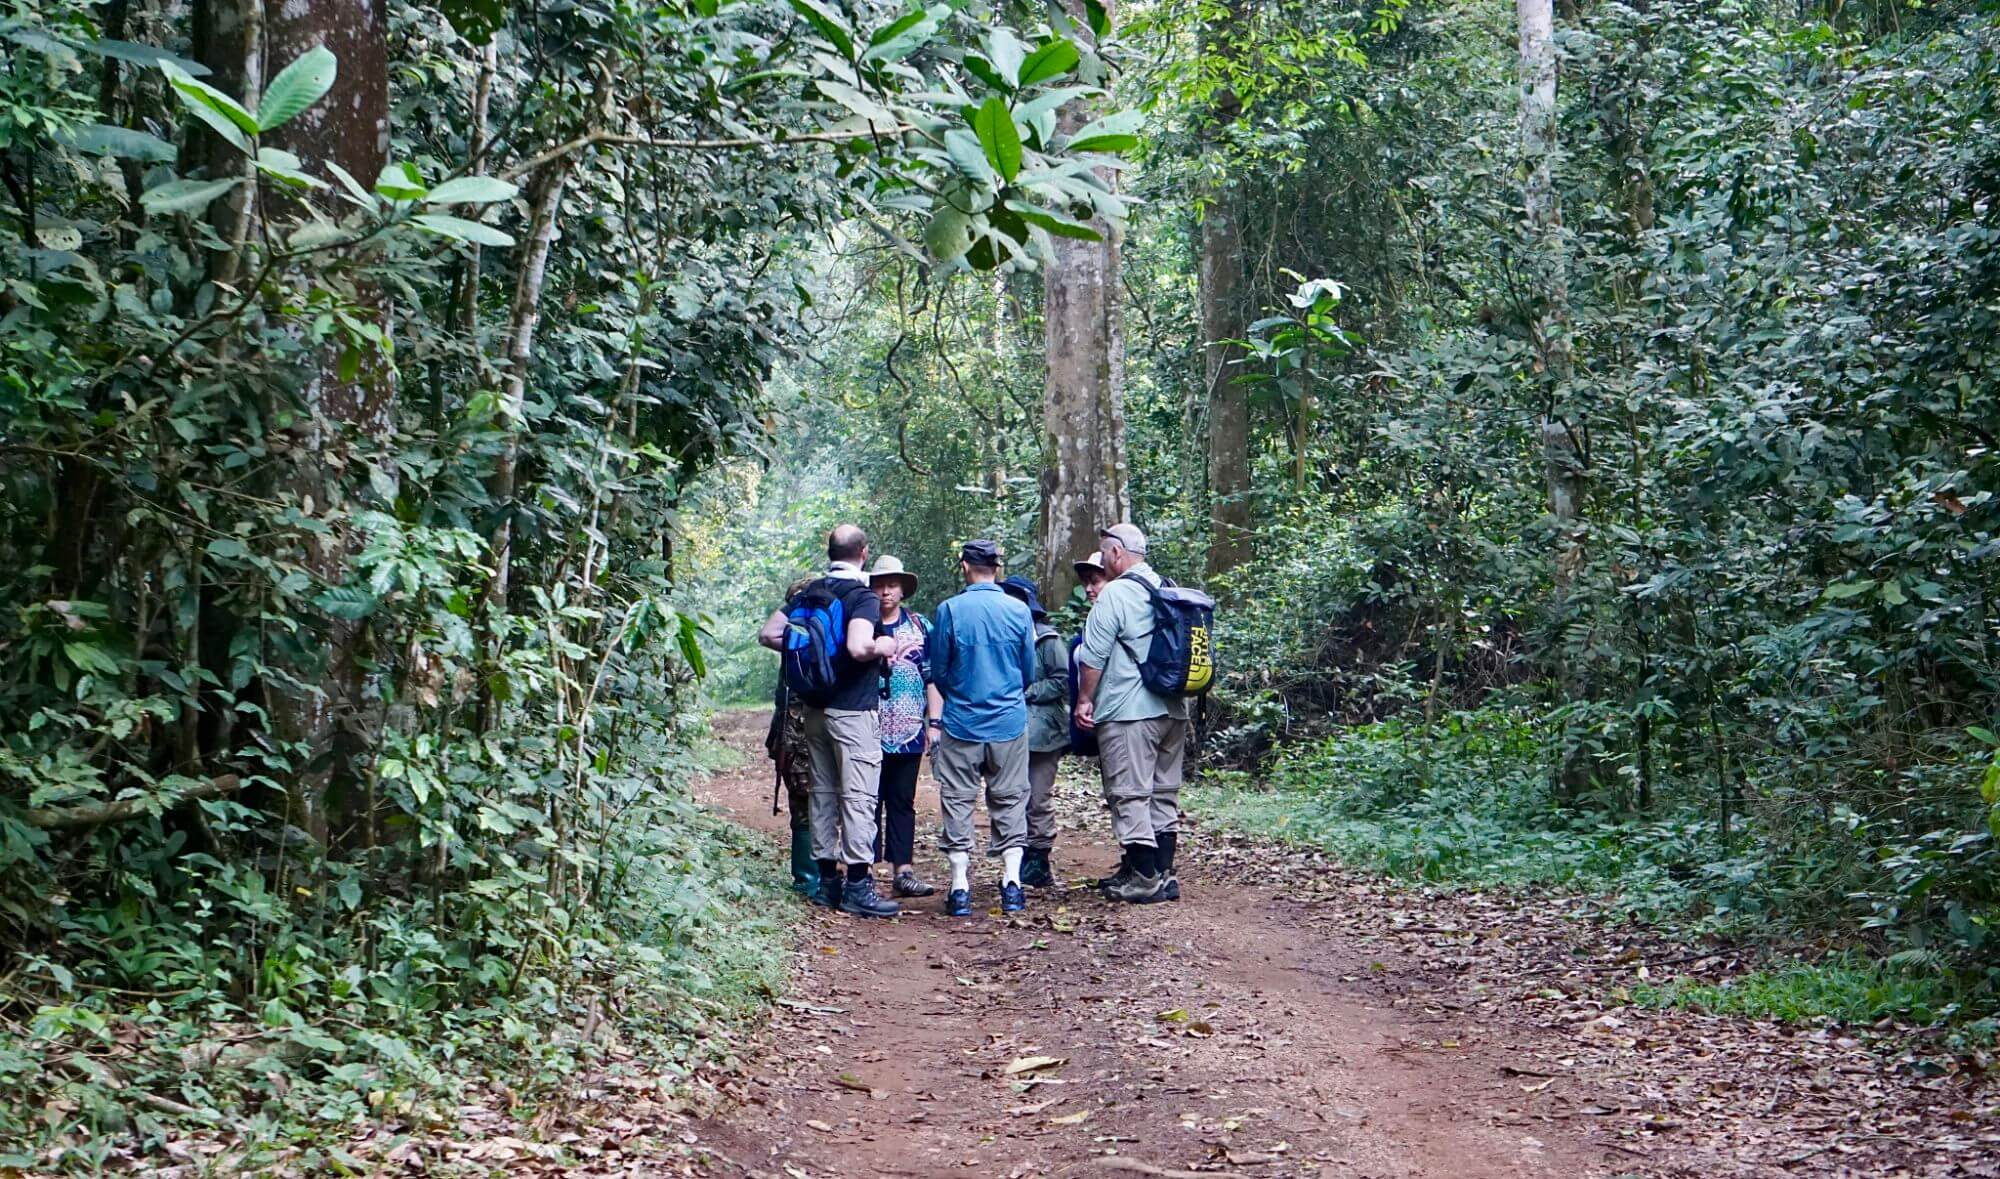 Start of the chimpanzee trek in kibale national park uganda